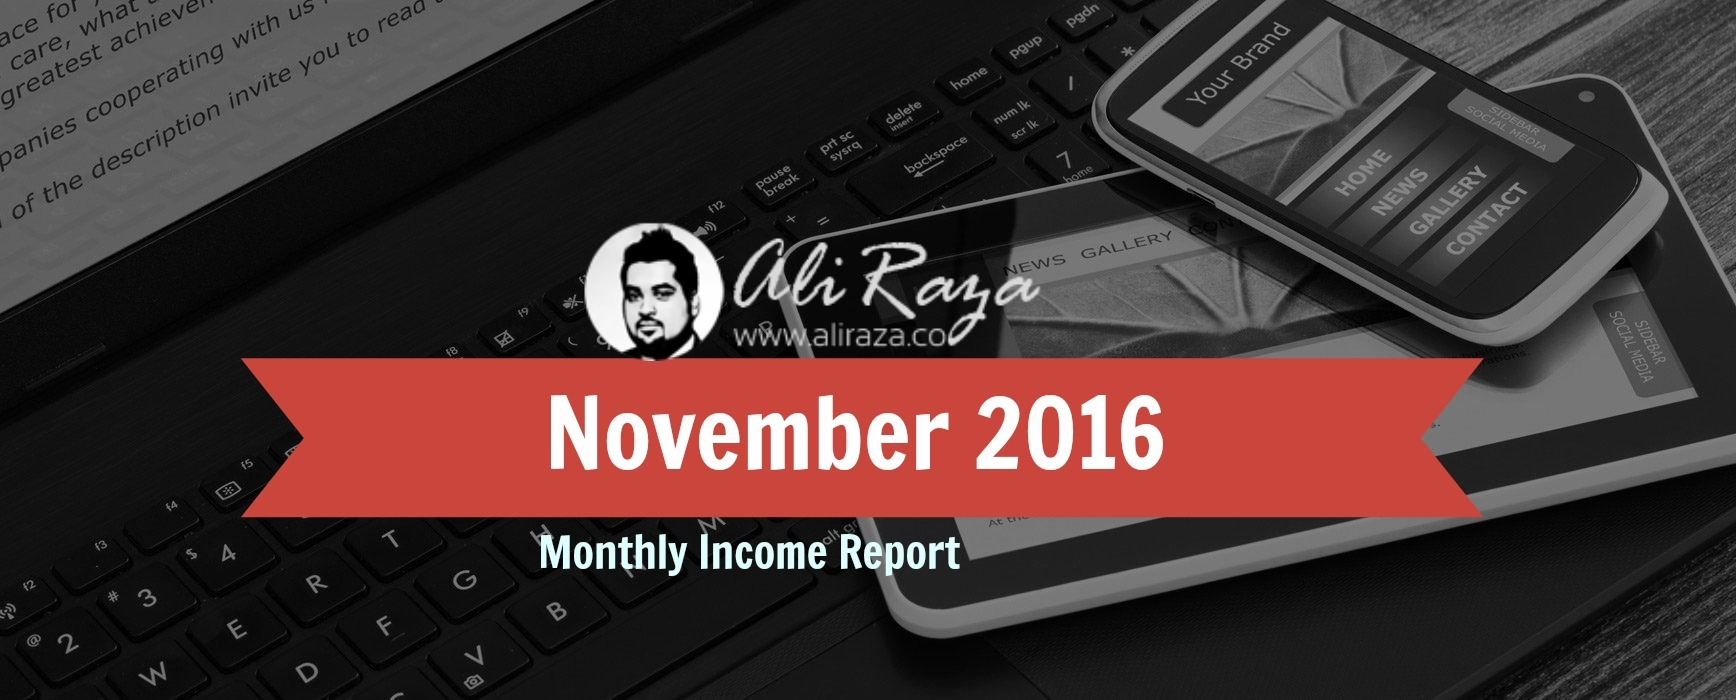 november 2016 monthly income report aliraza